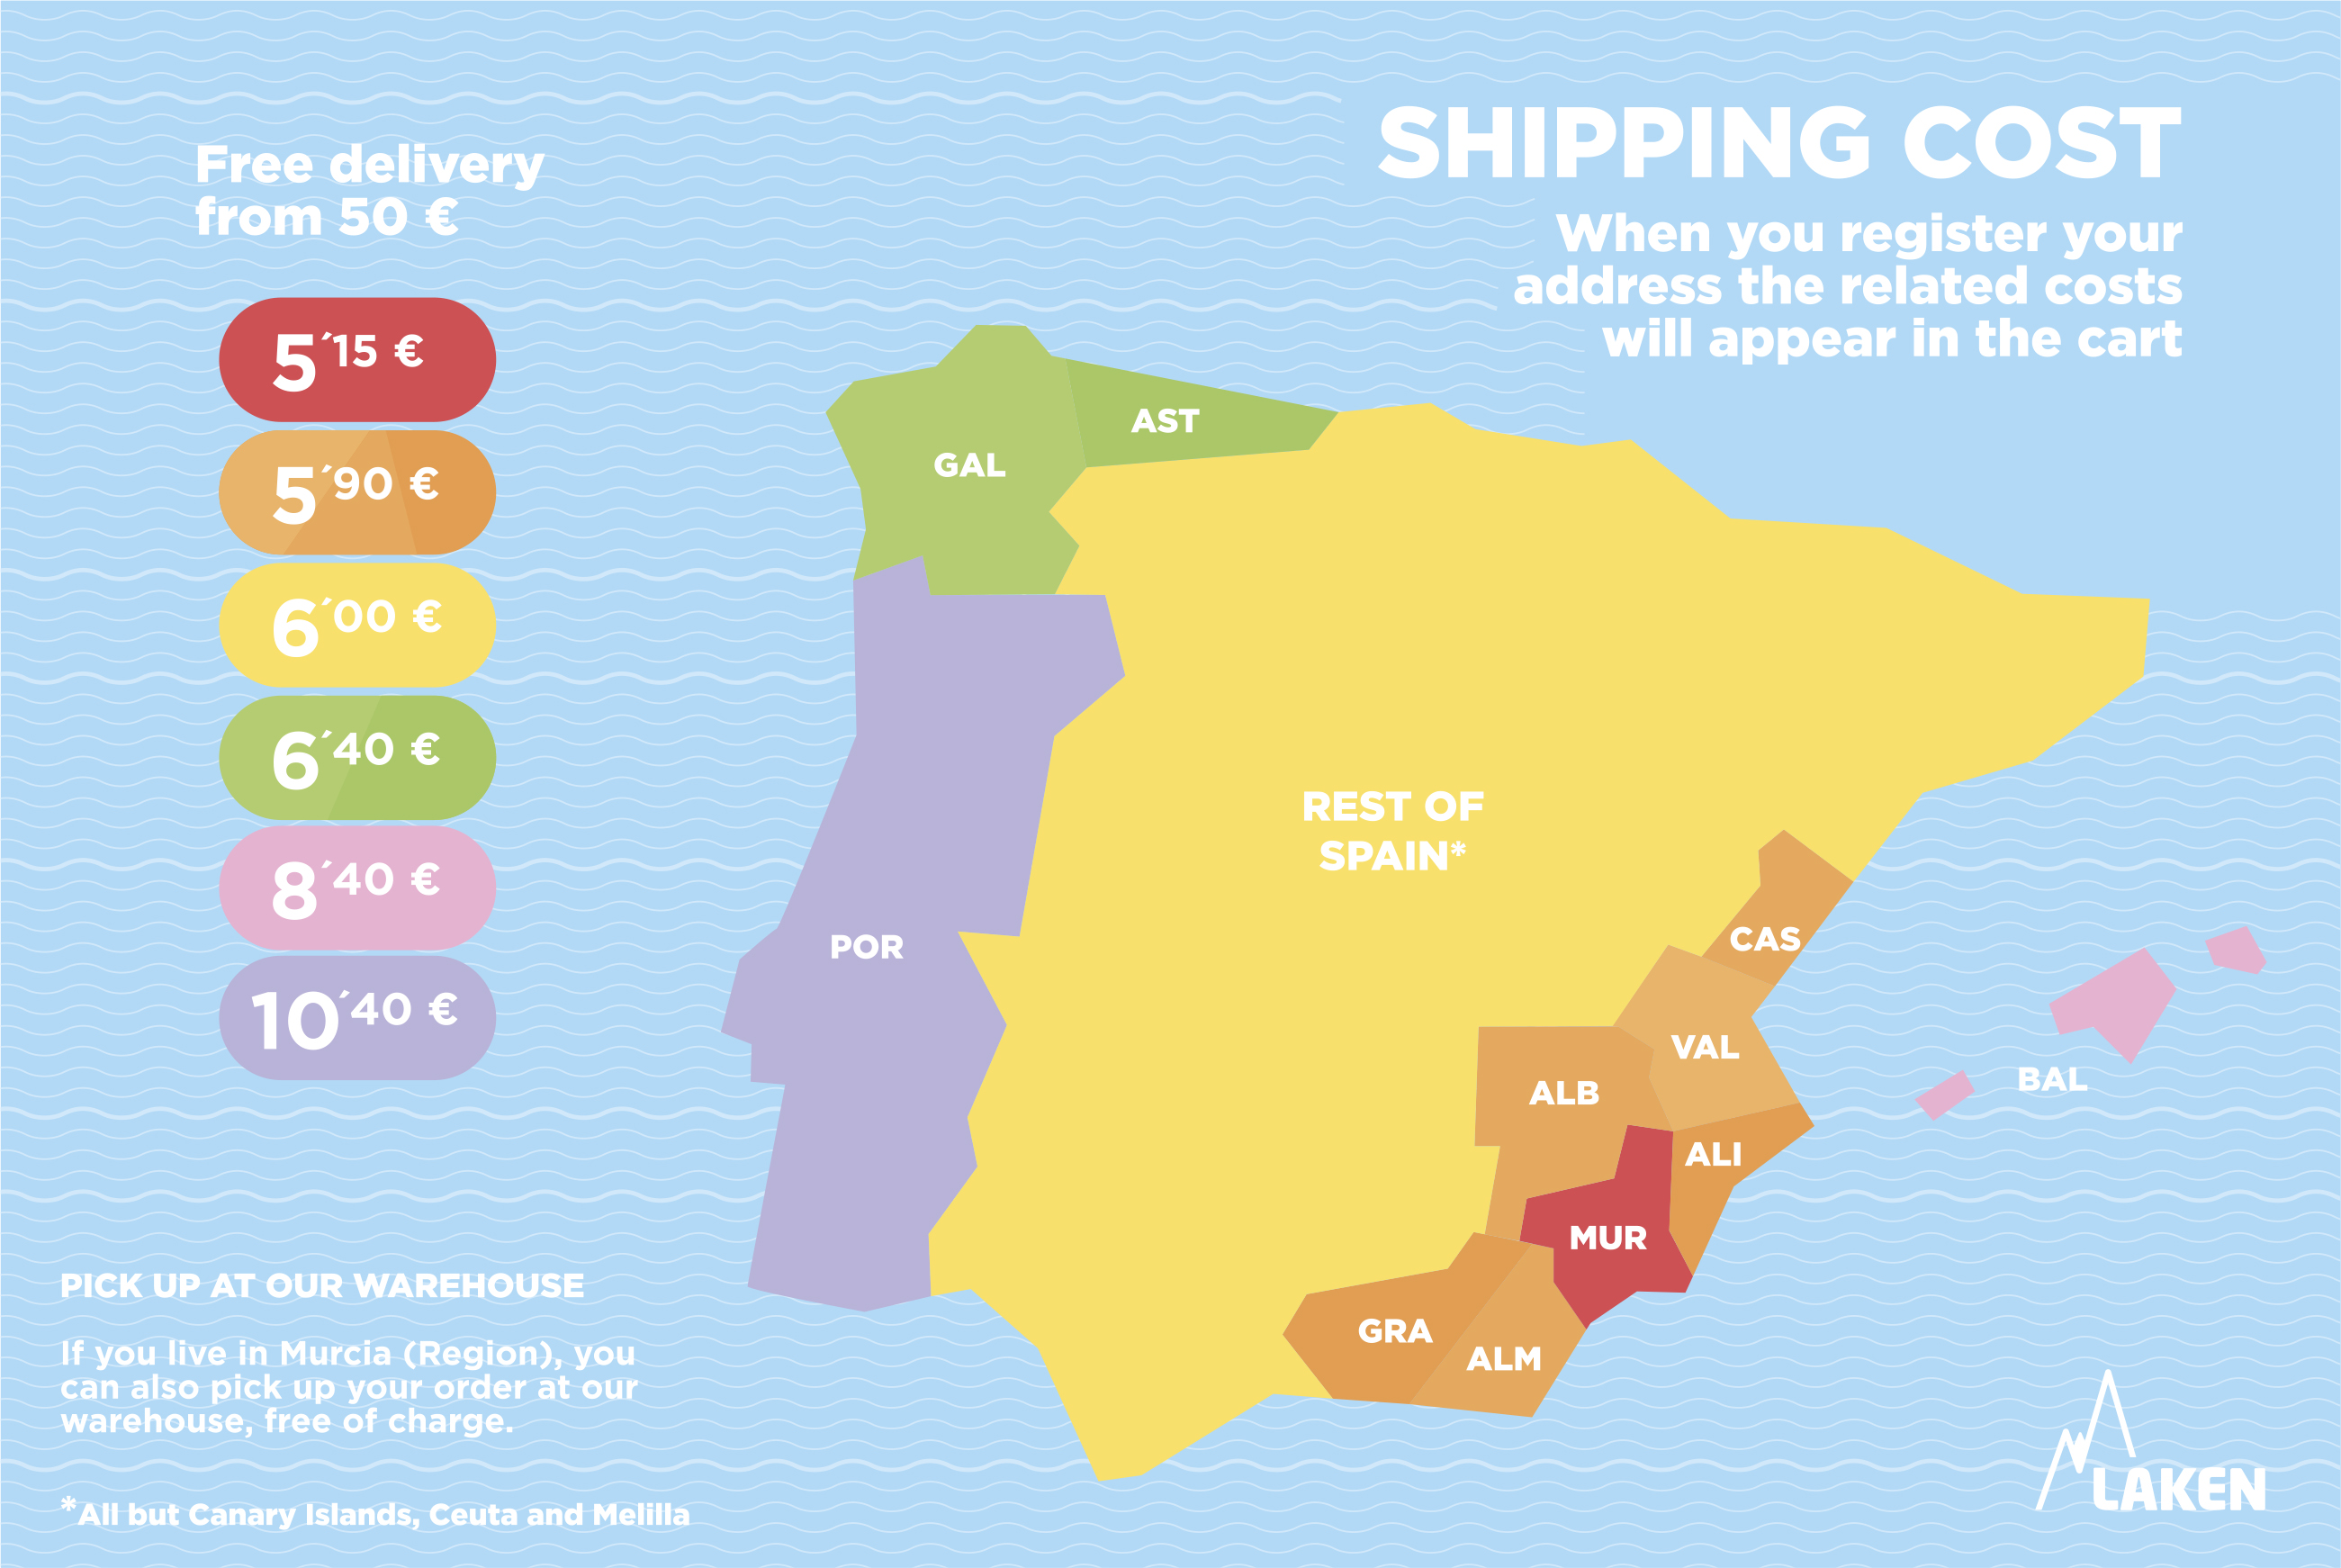 Shipping costs by area